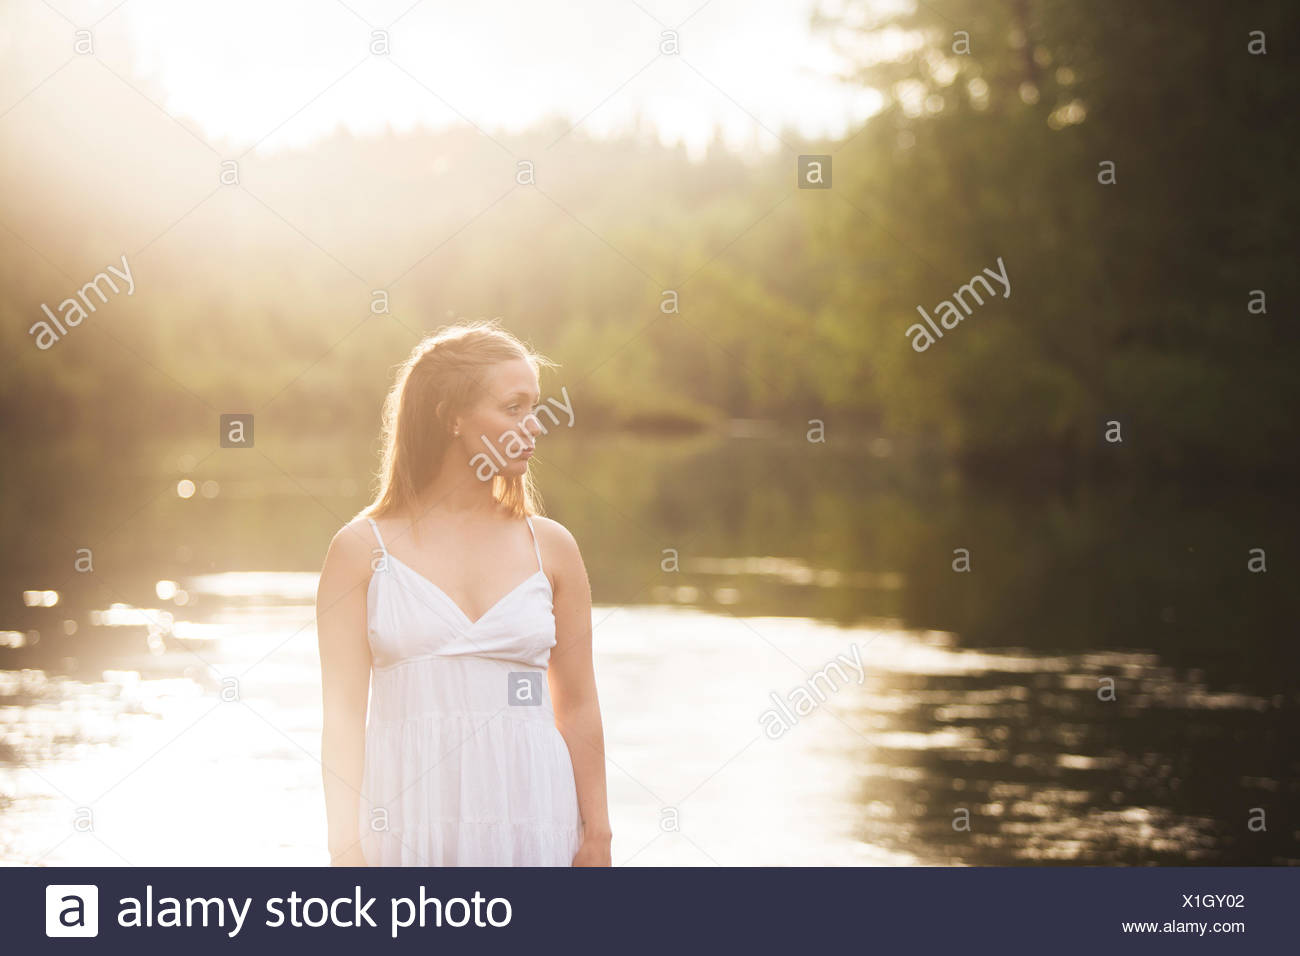 Woman wearing white dress by river - Stock Image